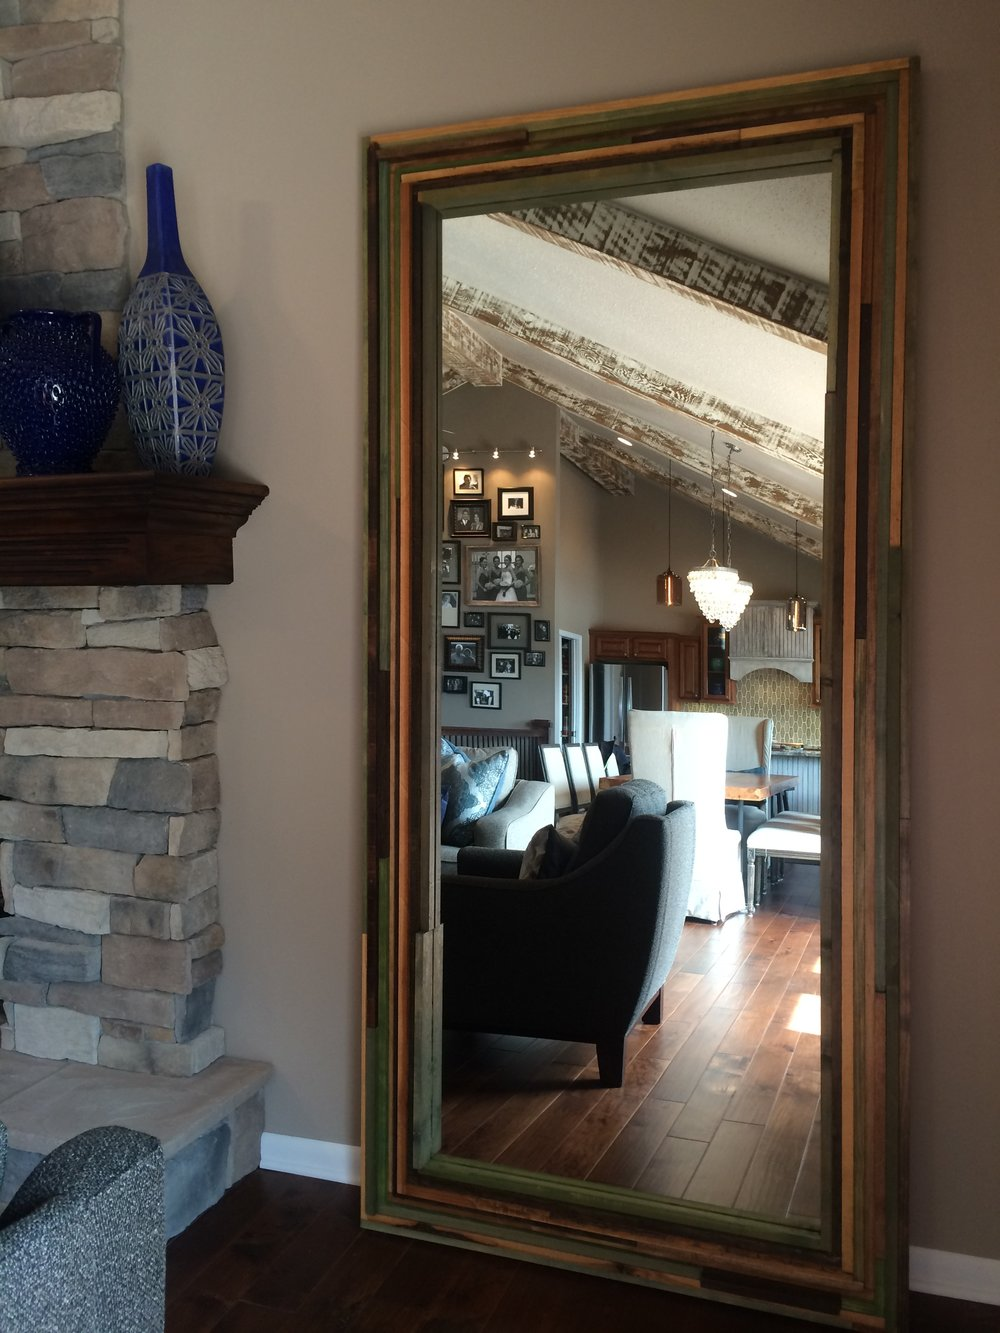 Custom made from old, stained lumber Cody found and rebuilt into a giant floor mirror to bounce even more light around the space.